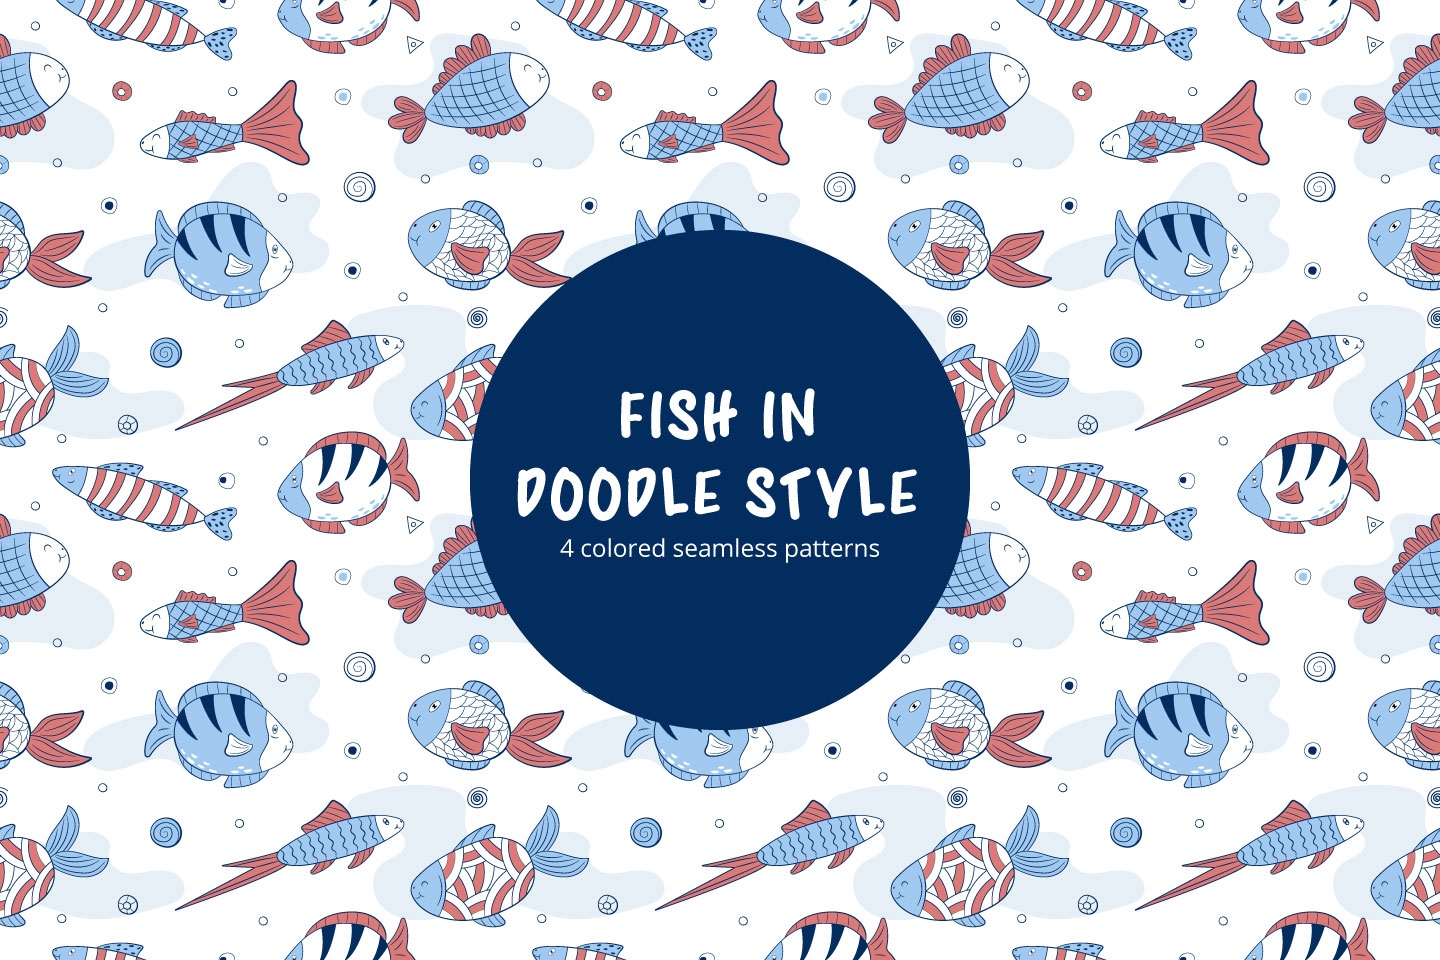 Fish in Doodle Style Free Vector Seamless Pattern